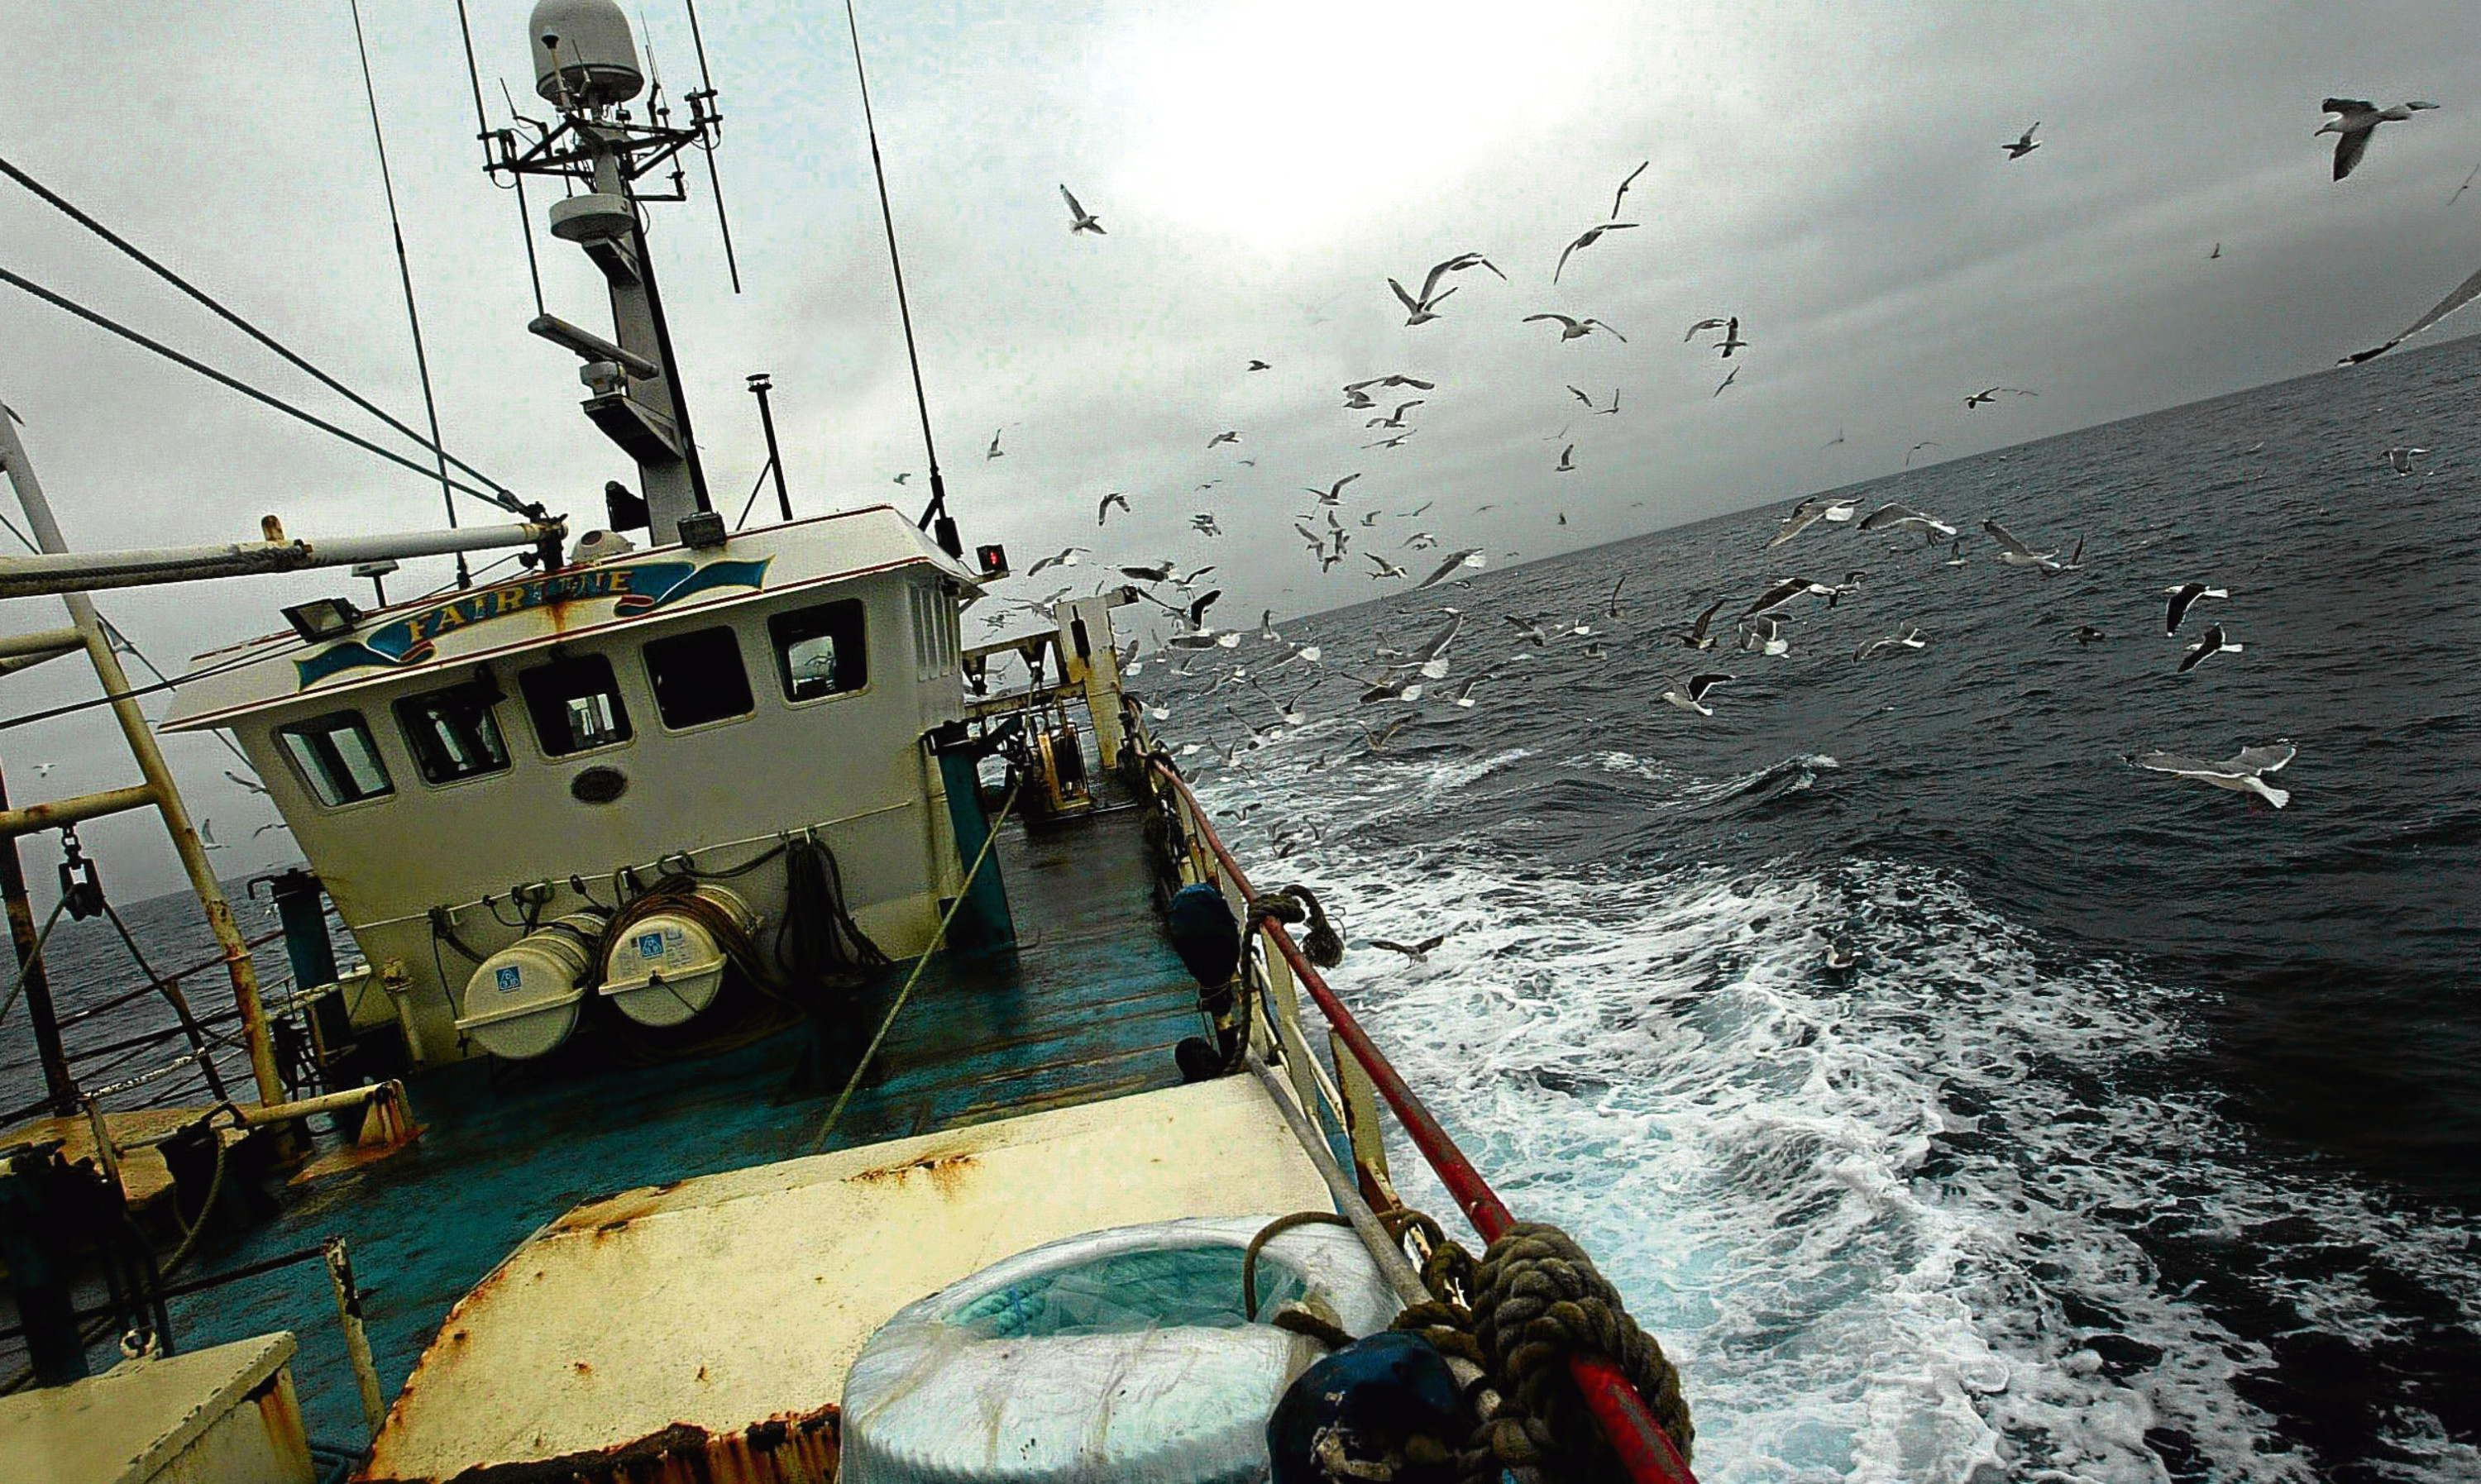 A fishing boat at work in the North Sea.